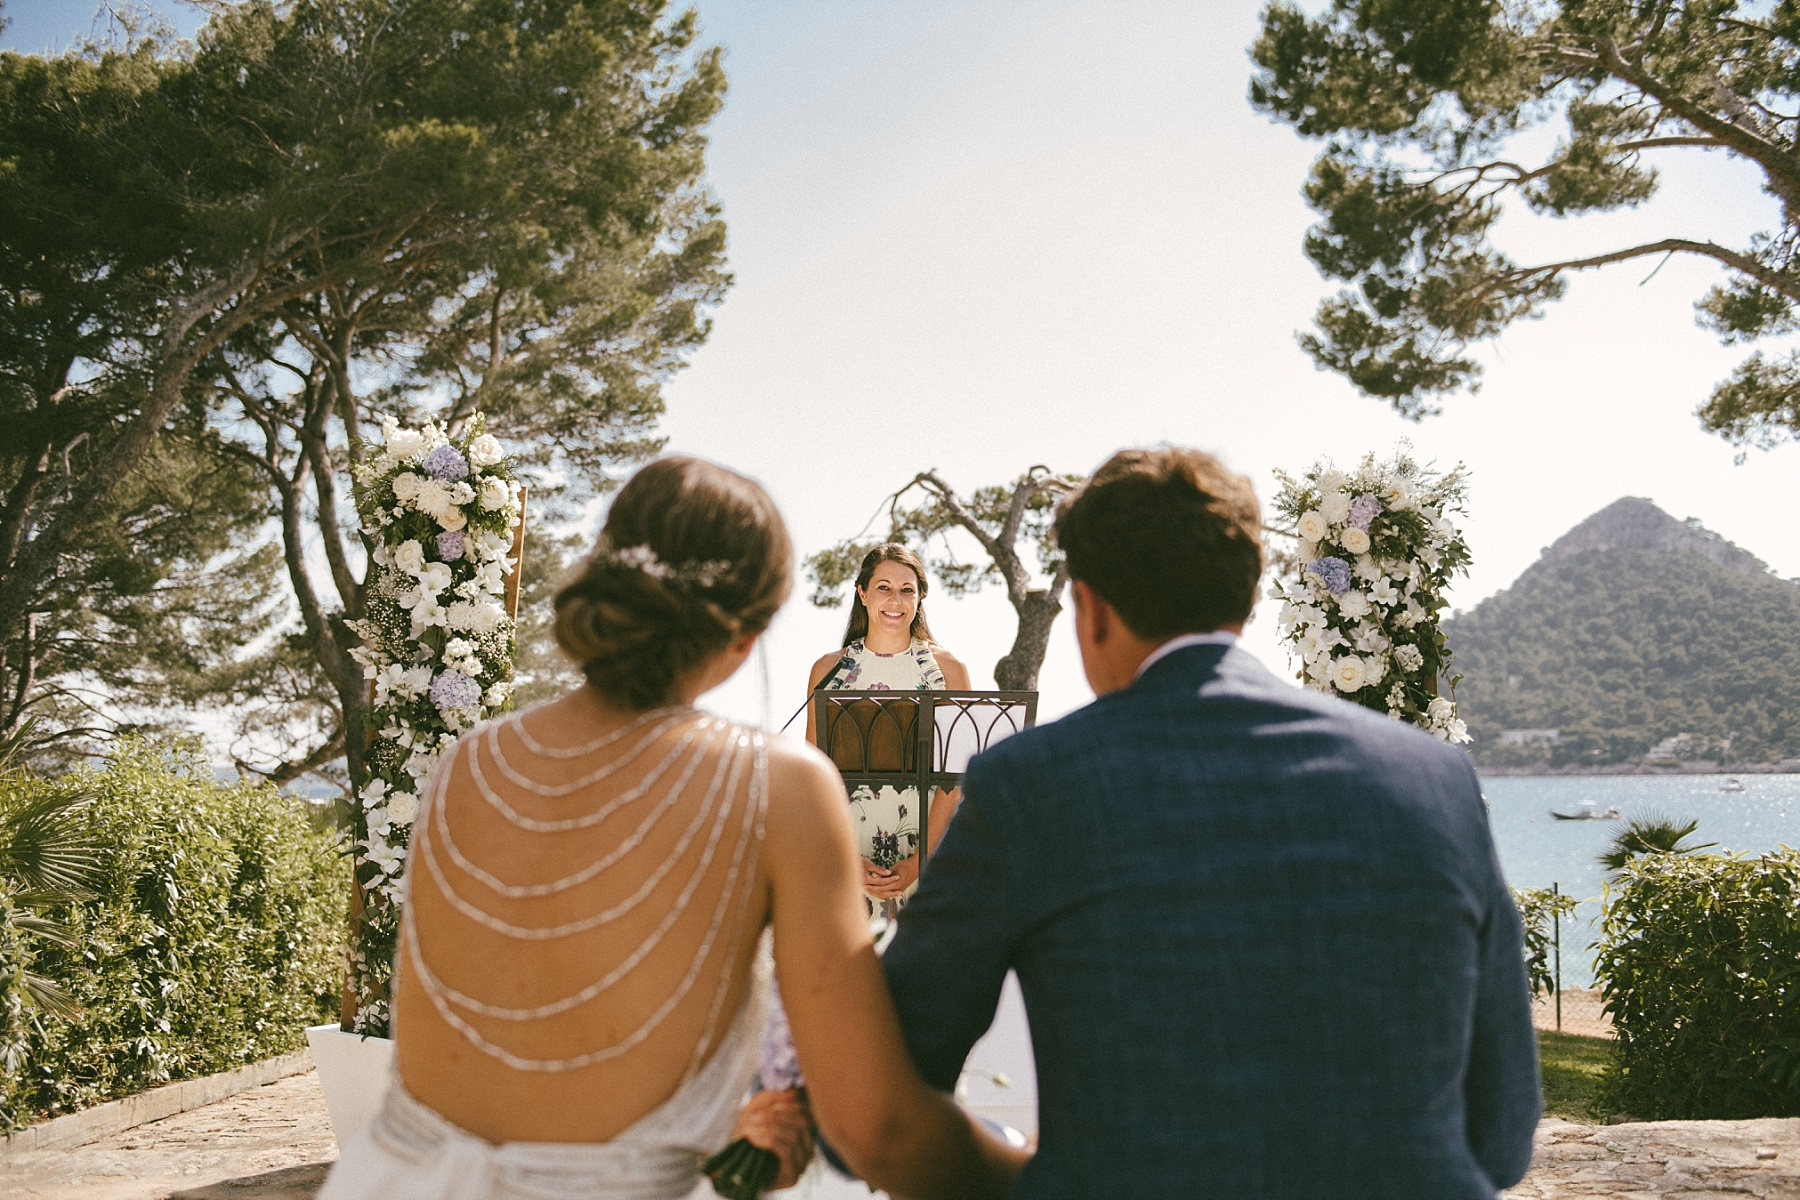 Spanish wedding photography